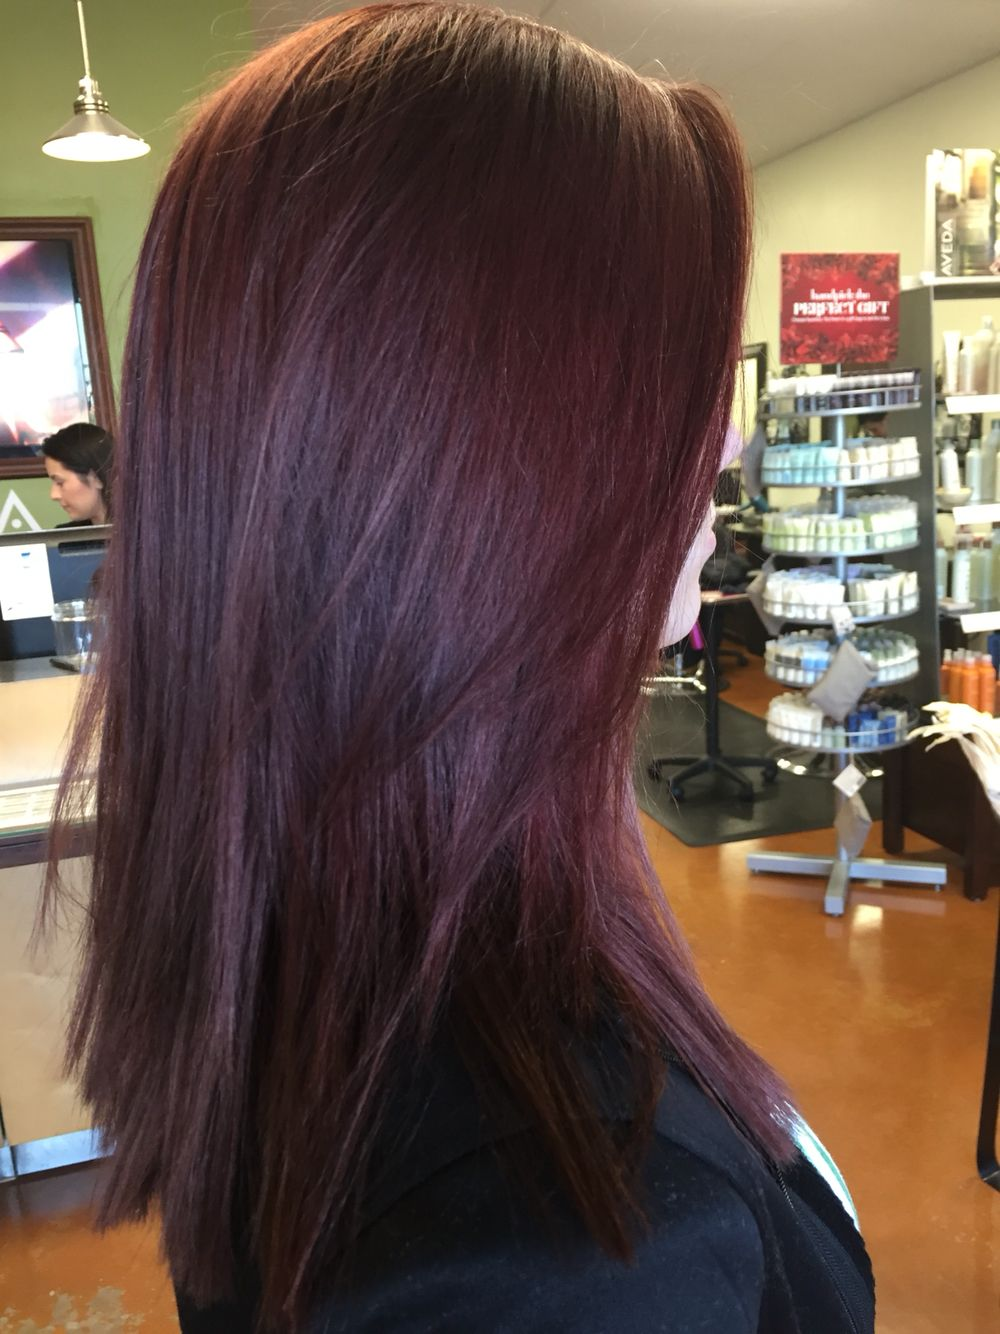 Merlot hair color - Get To Know The Ultimate Fall 2017 Hair Color Trends Right Here Right Now Well It Is True That We Still Have Summer Ahead